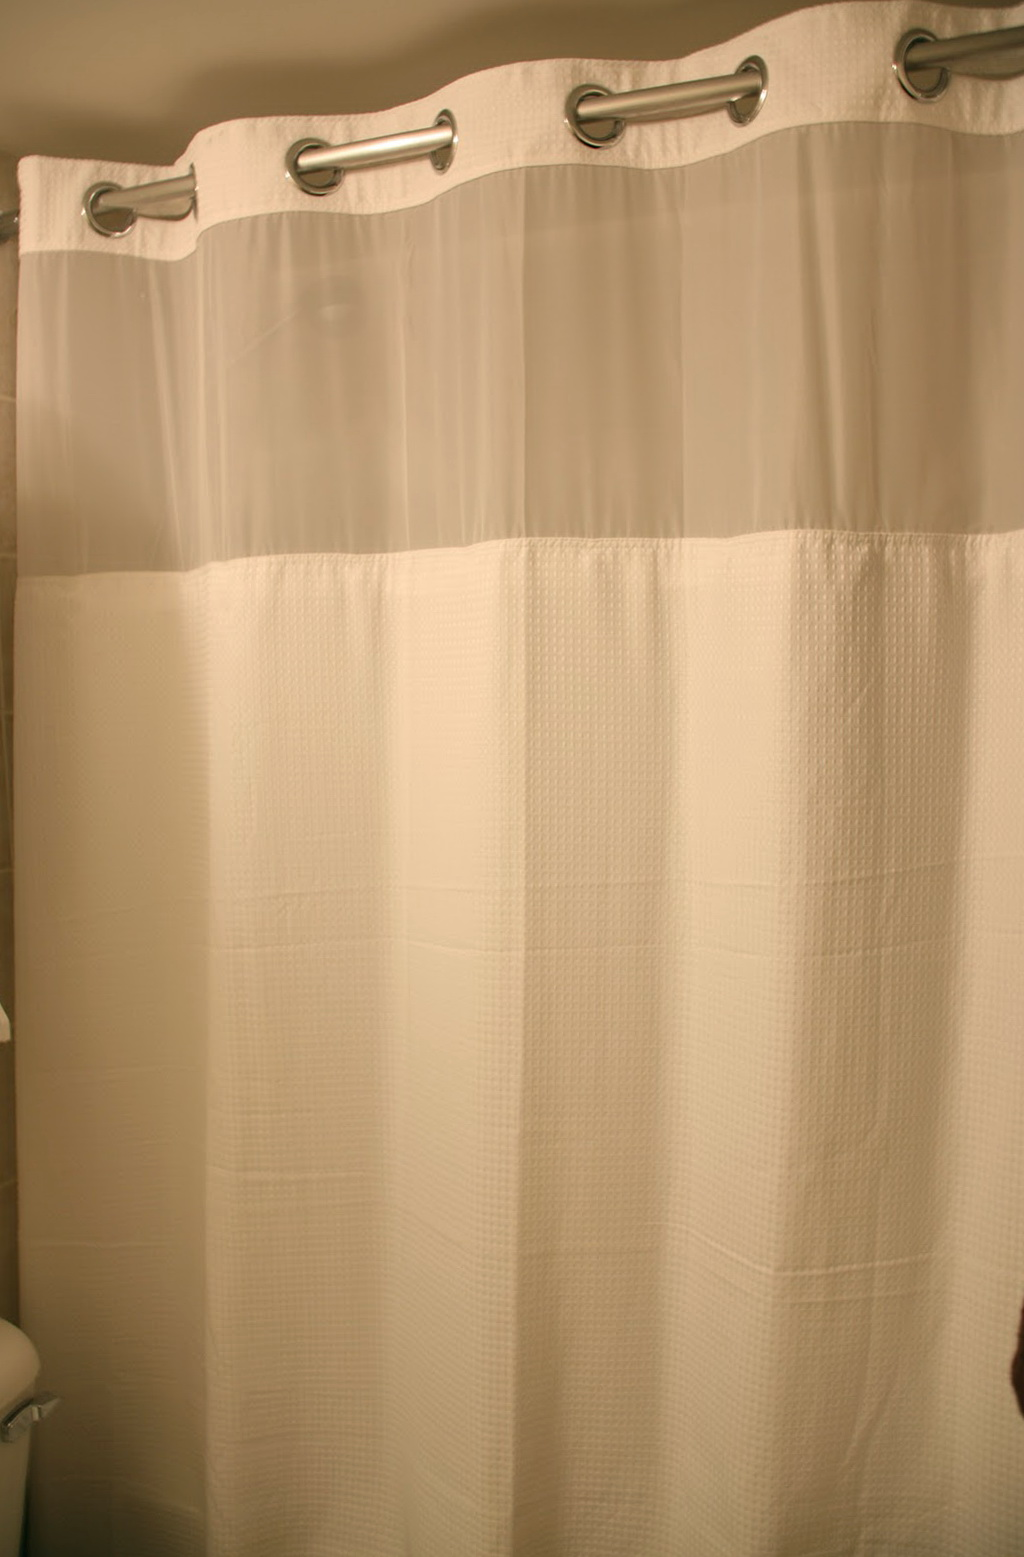 Coolest Shower Curtains Ever